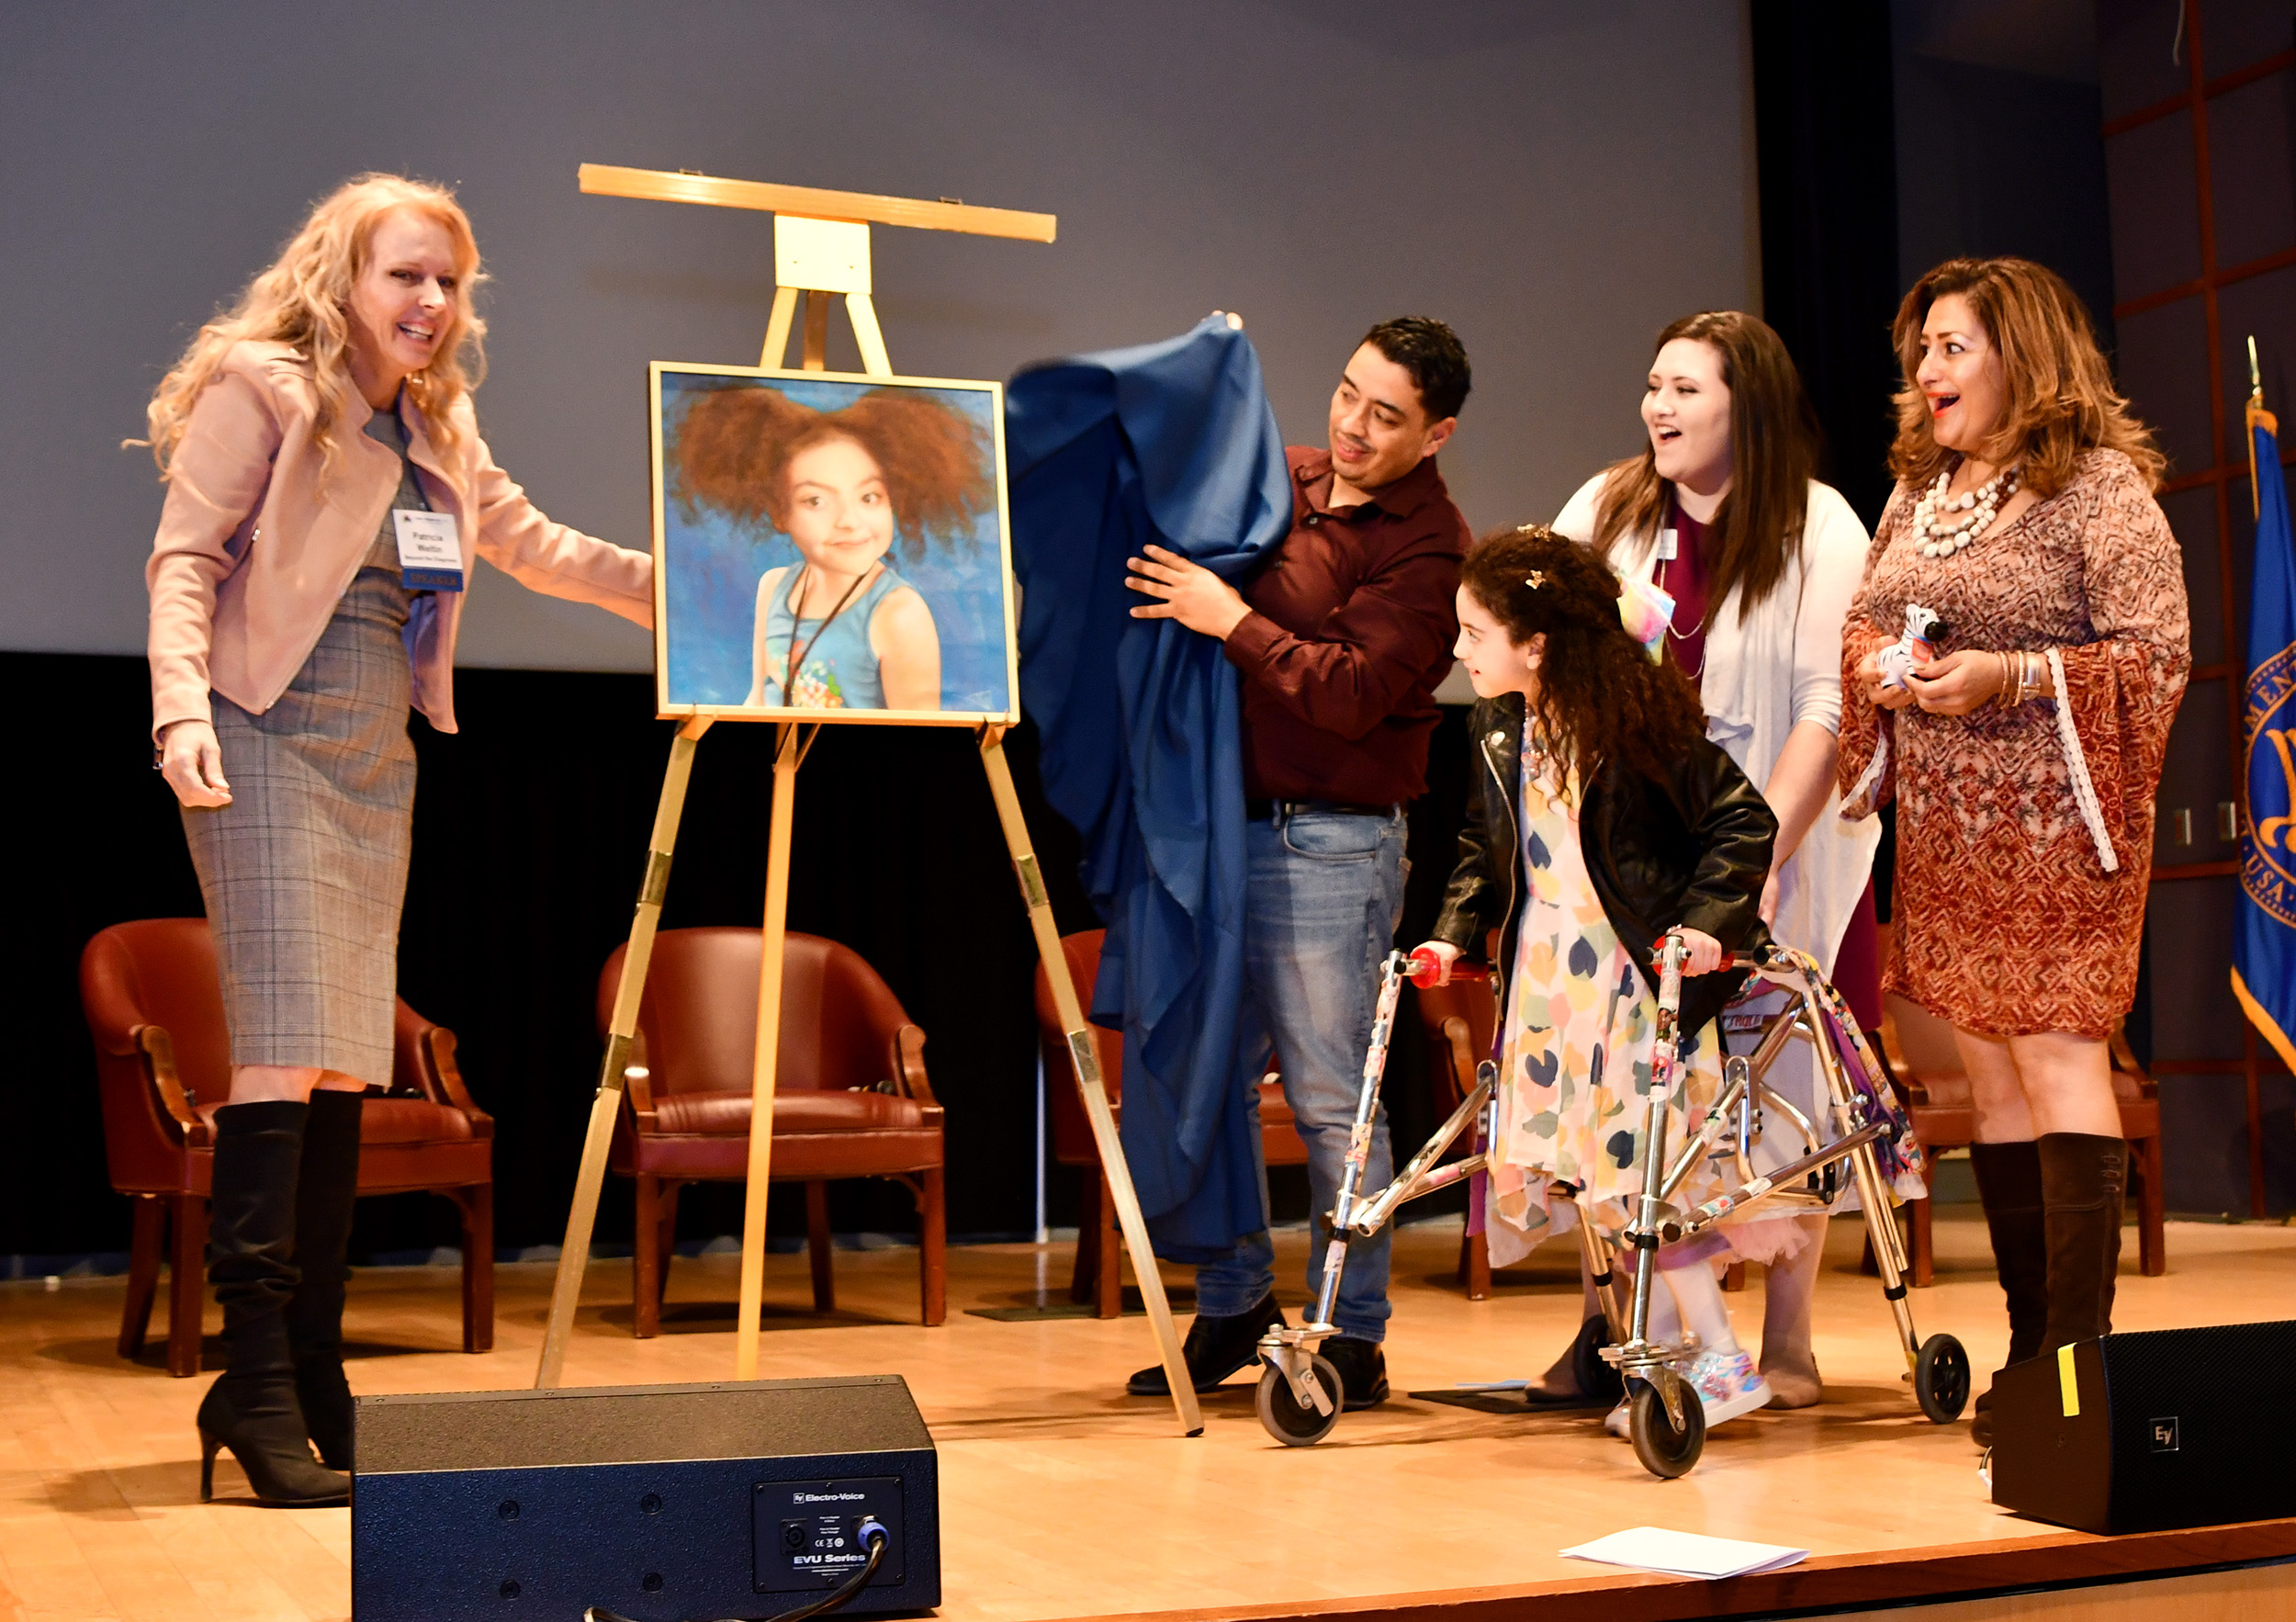 Amber's portrait is unveiled